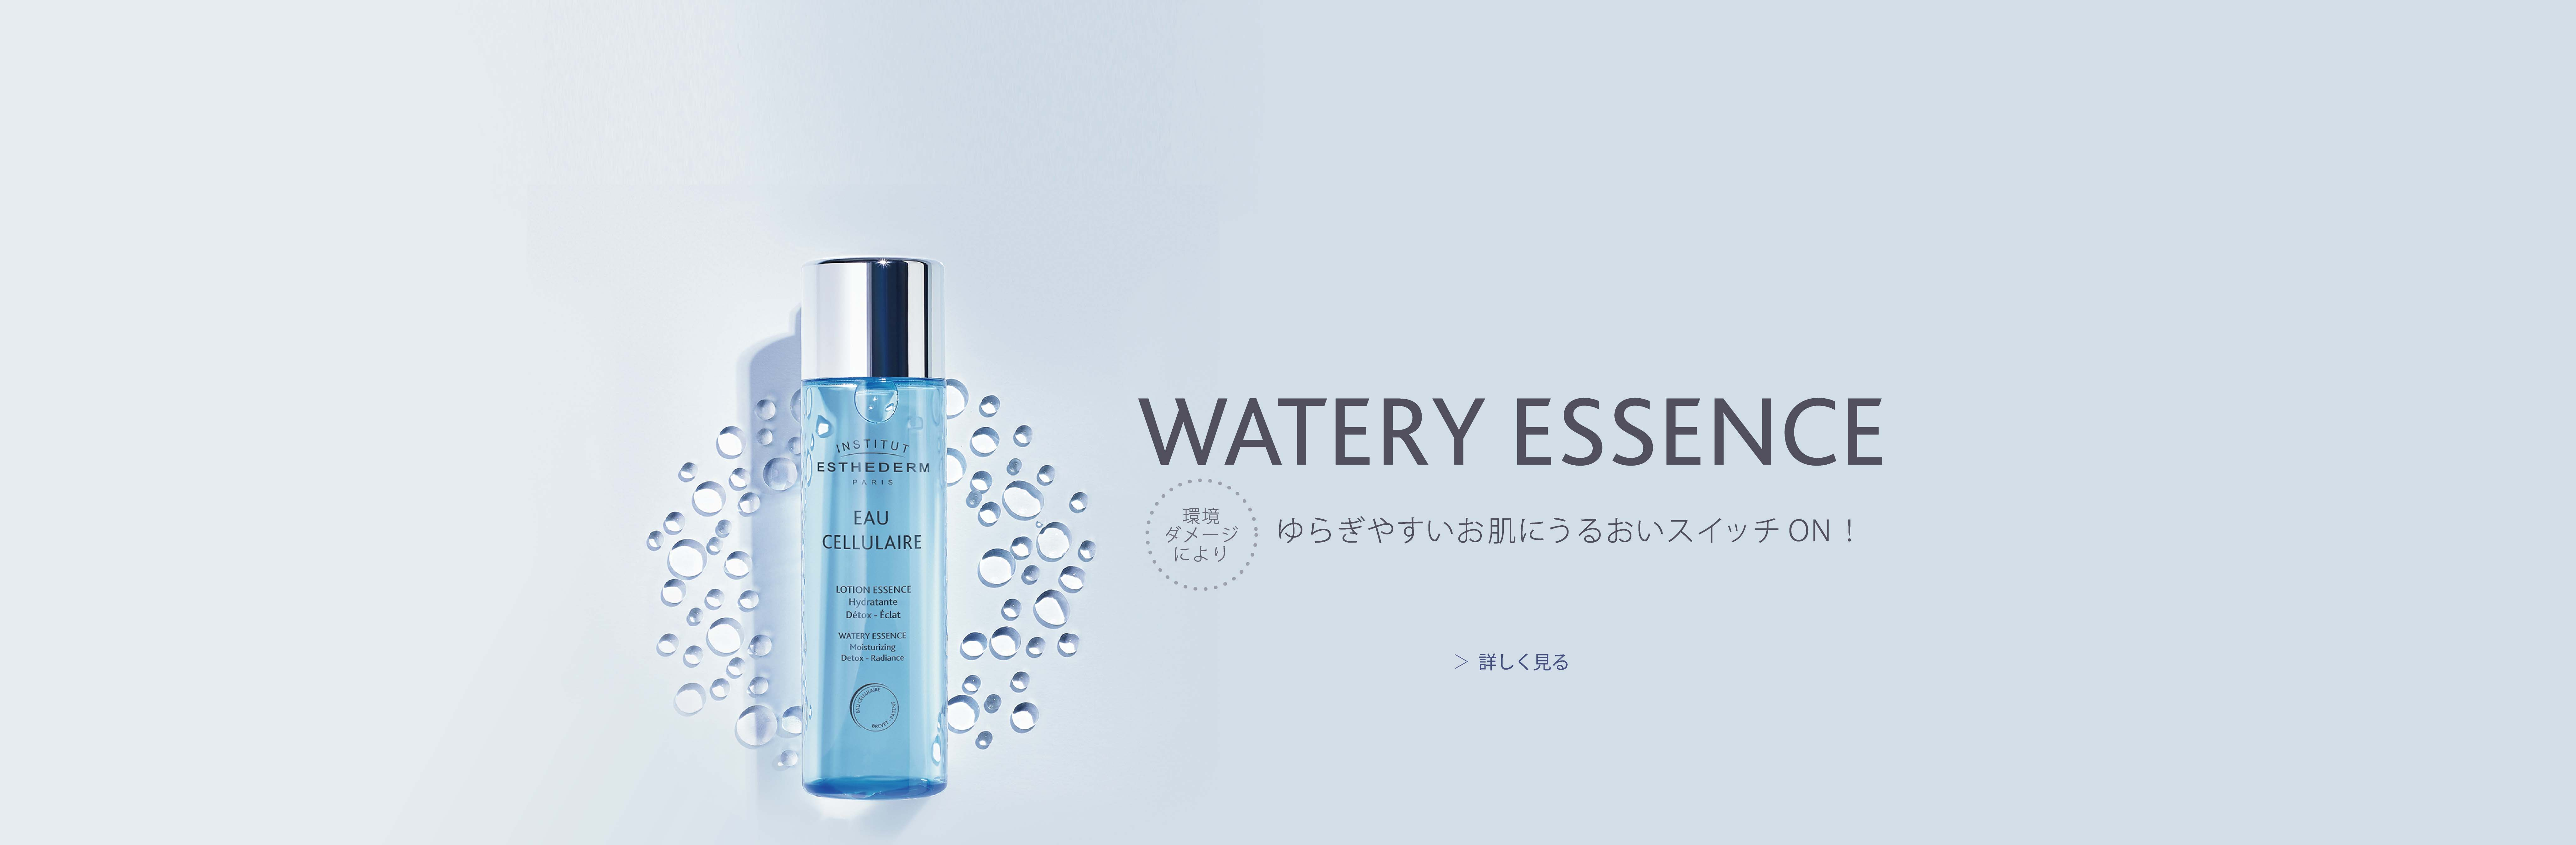 watery essence